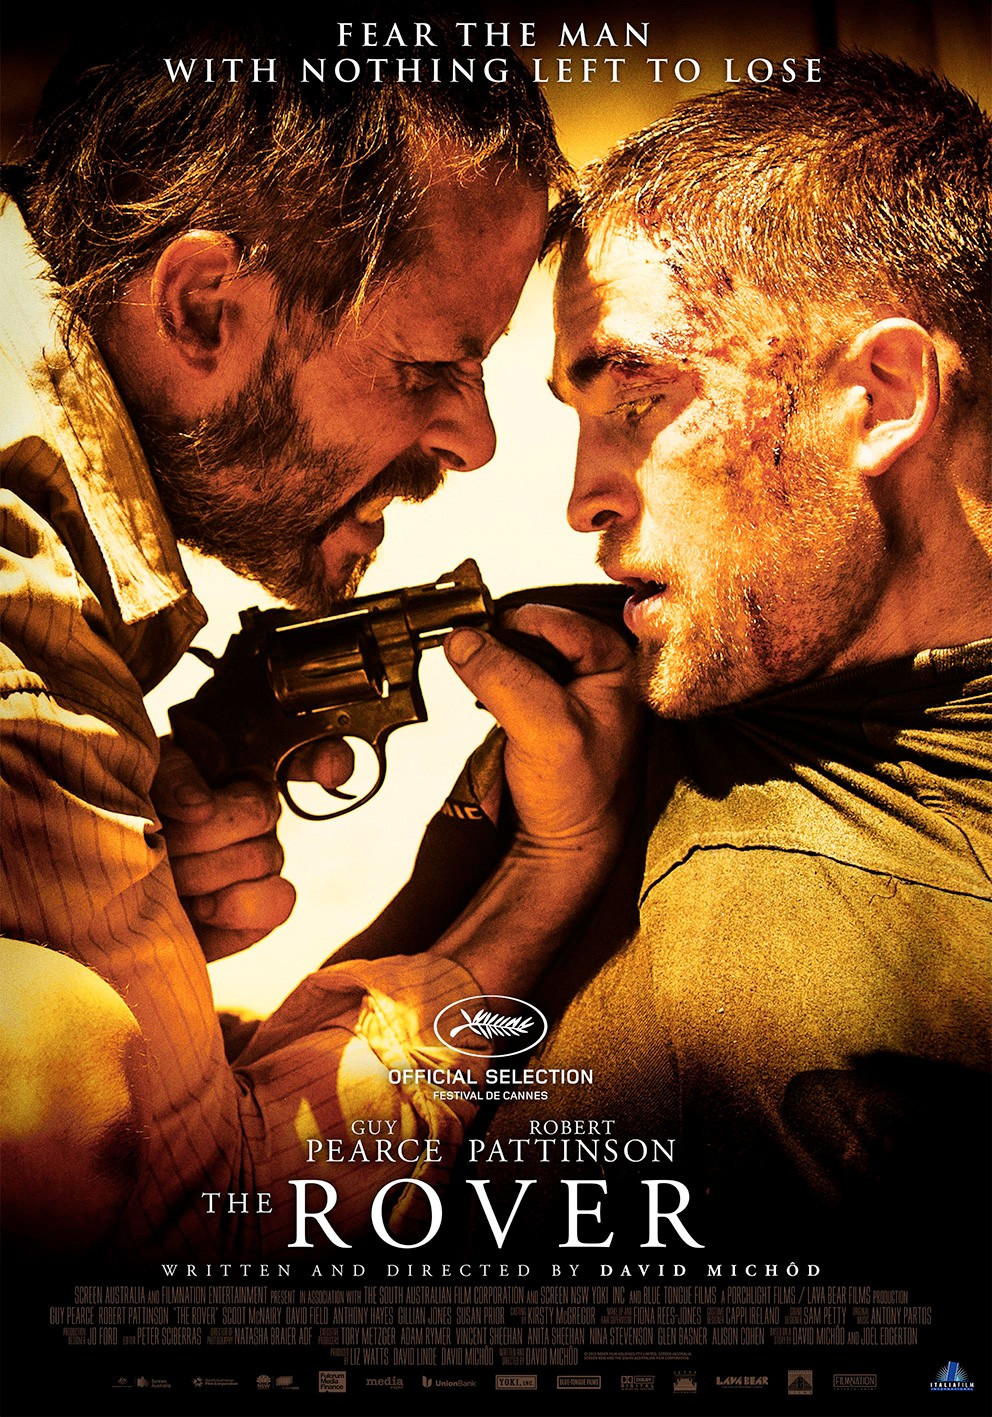 The Rover-Official Poster Banner PROMO POSTER XLG-06JUNHO2014